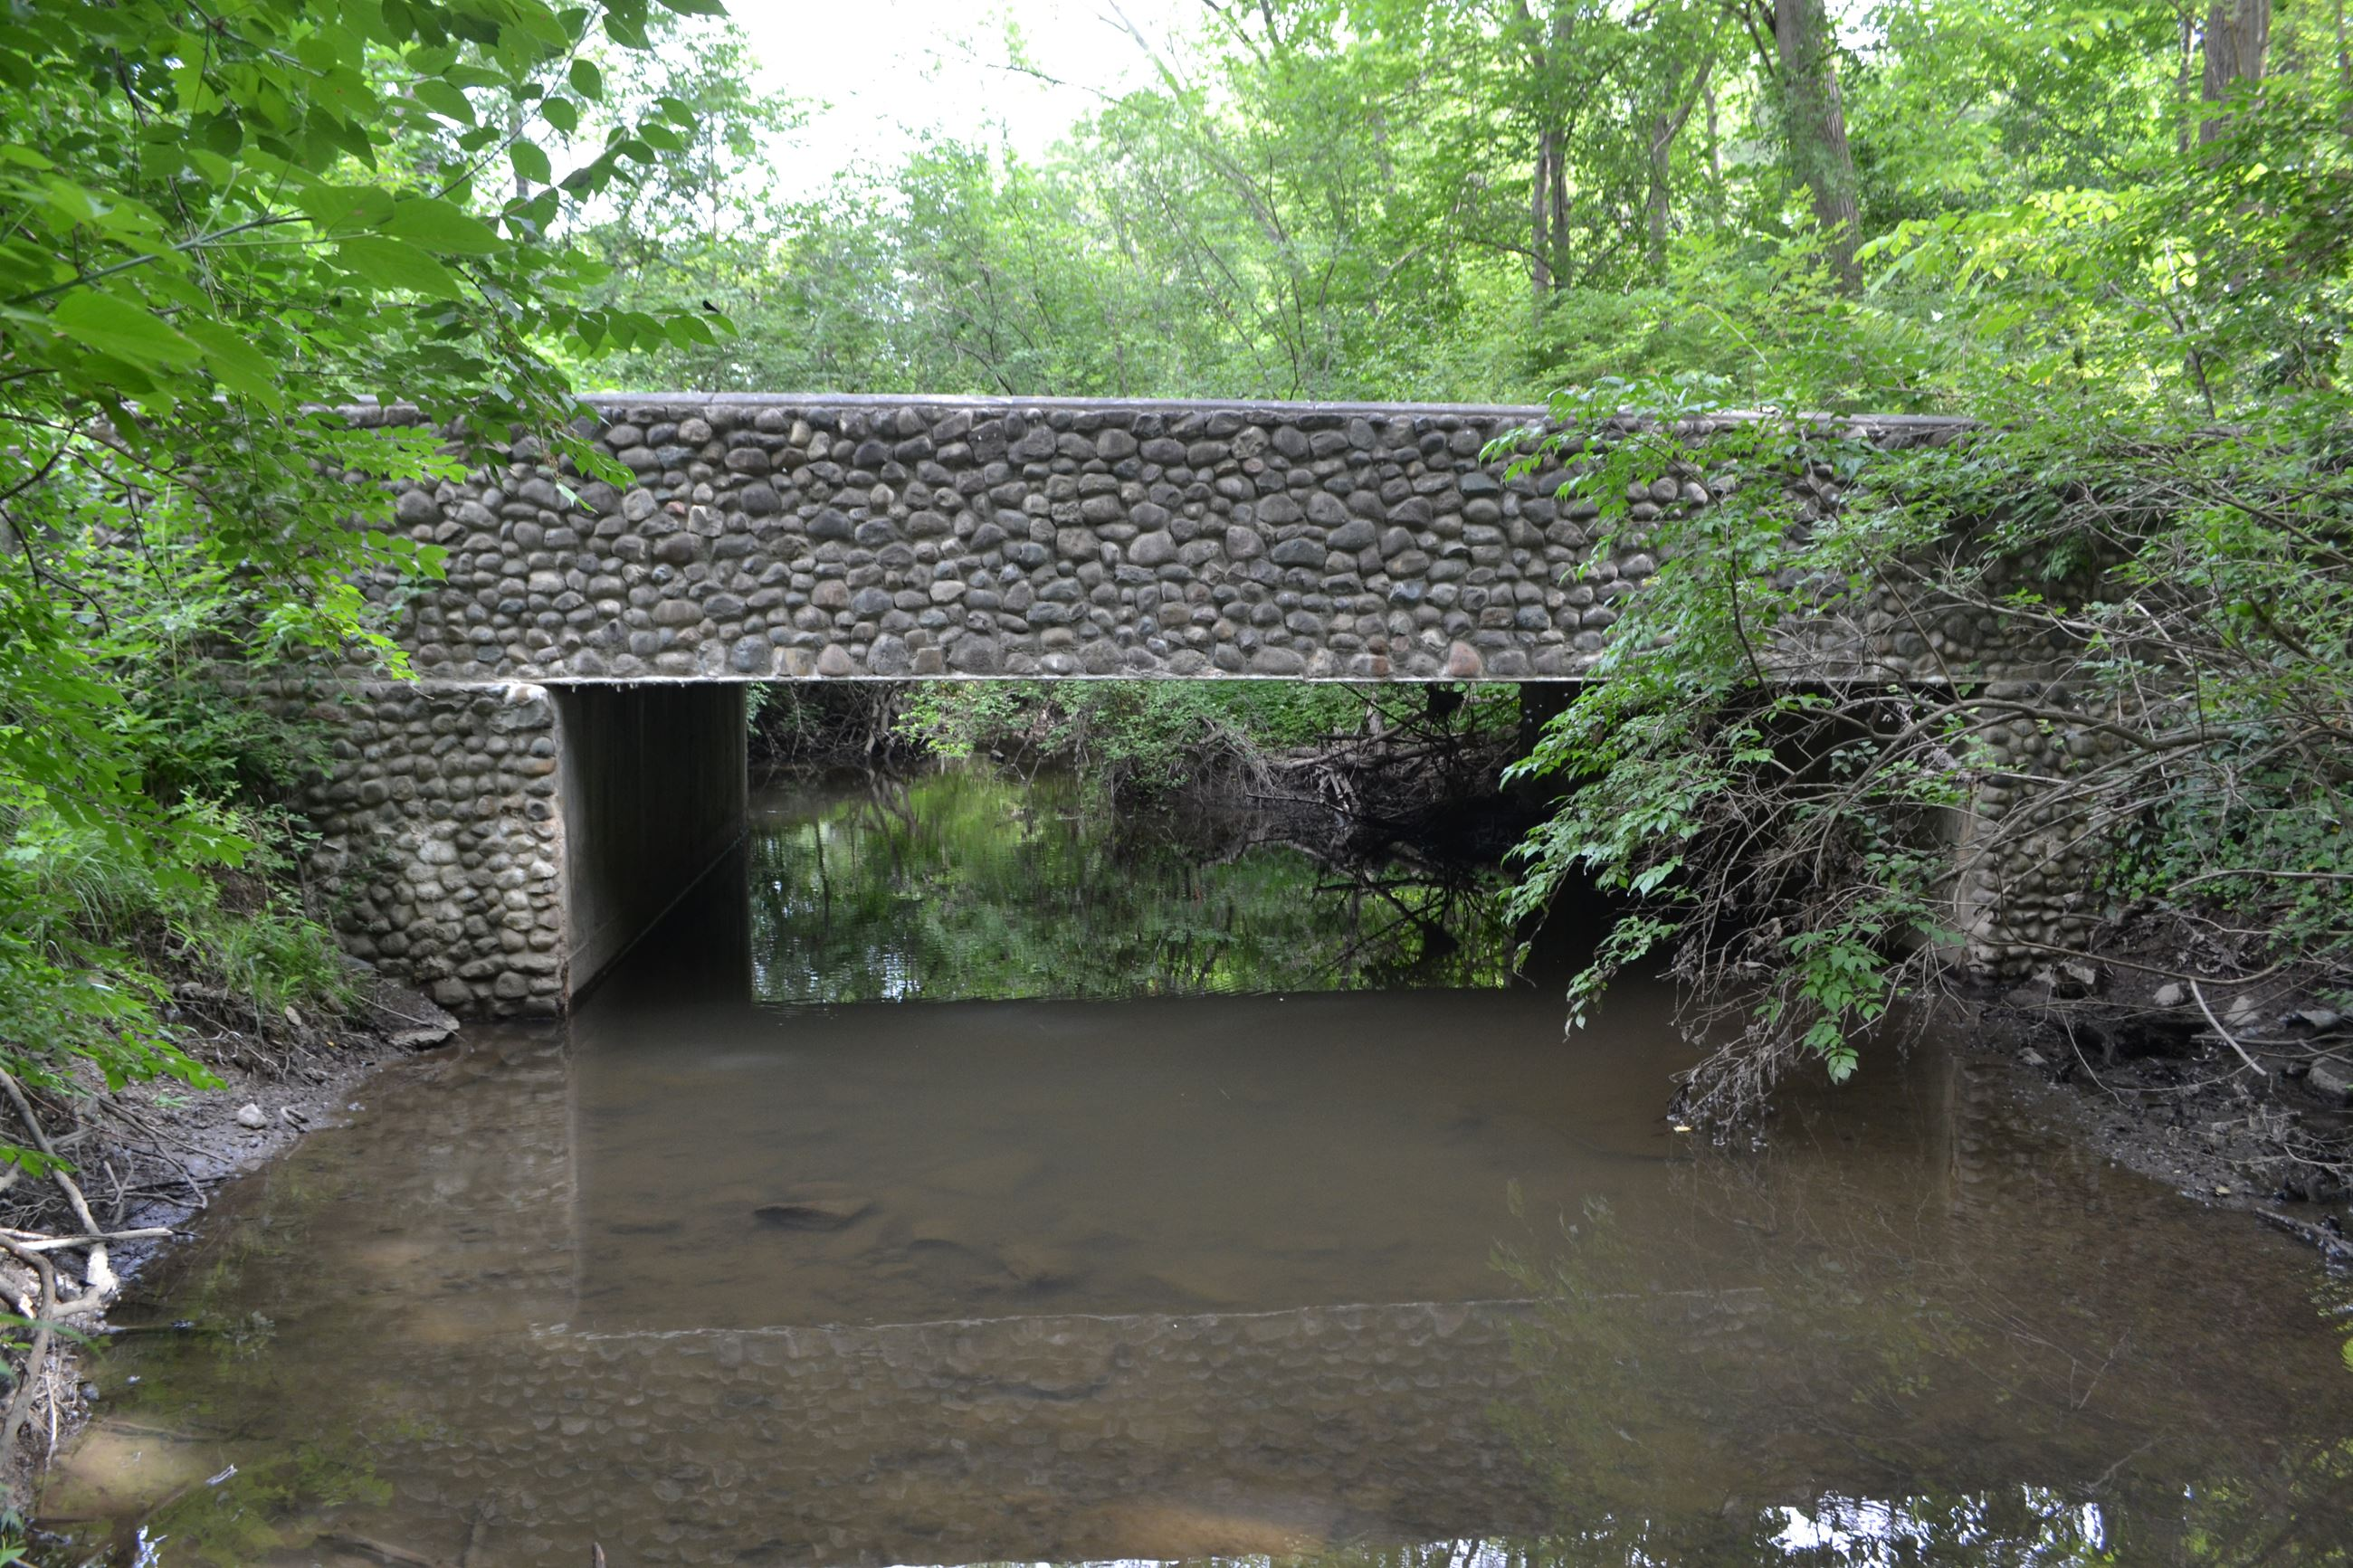 Manor Road Bridge, Bloomfield Twp